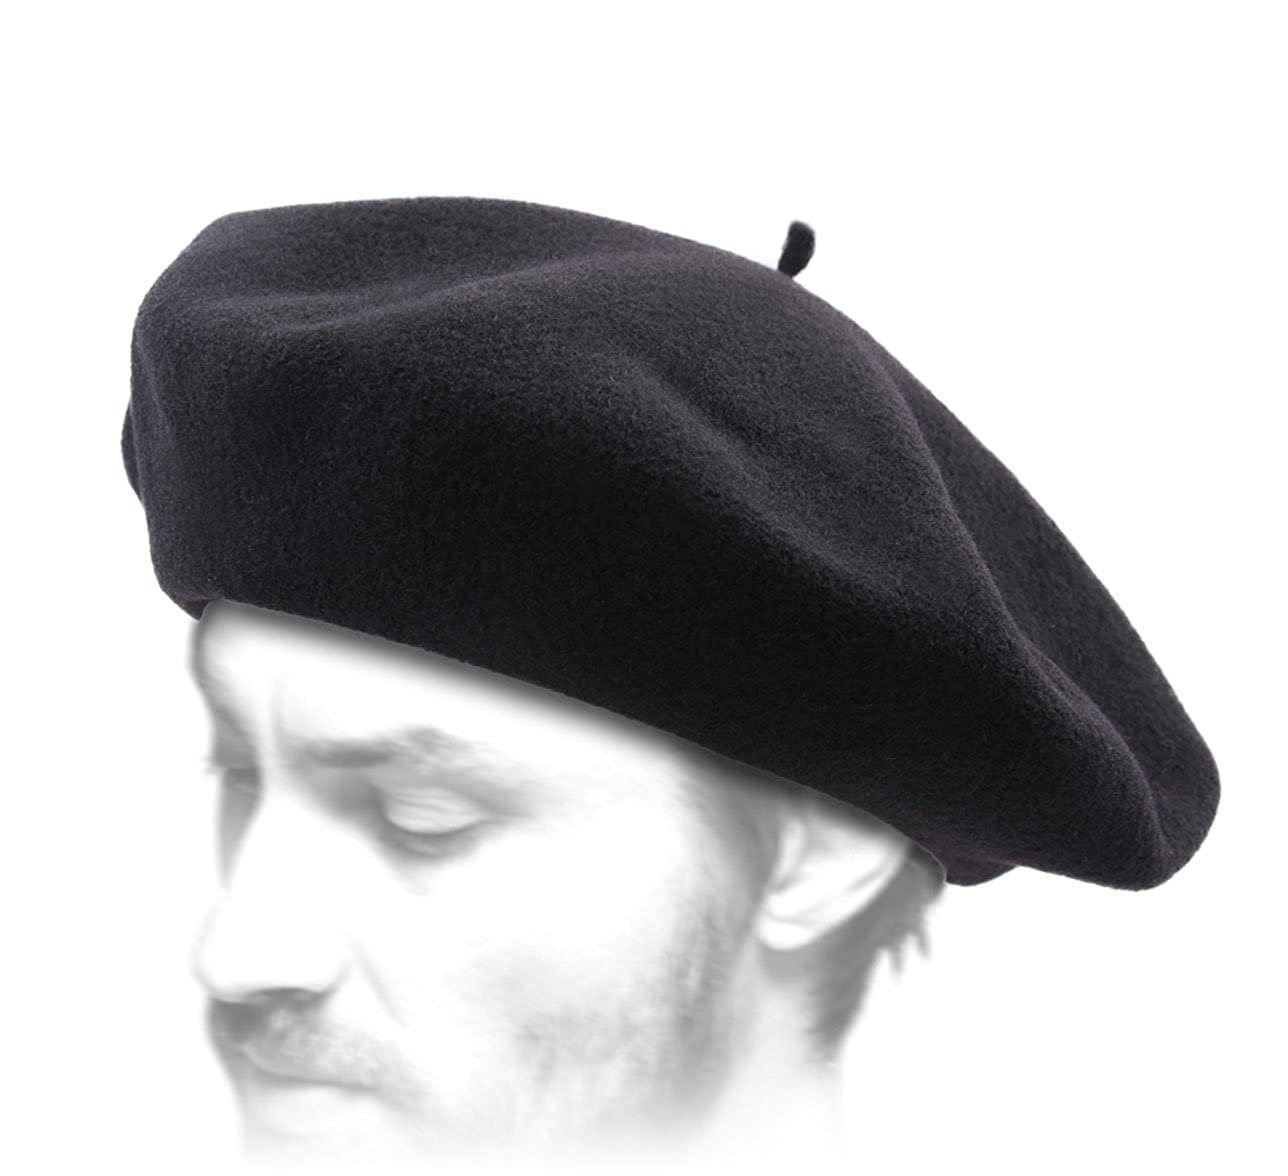 93dfdd4b2b407 Laulhère Men s Basque Authentique French Beret Basque